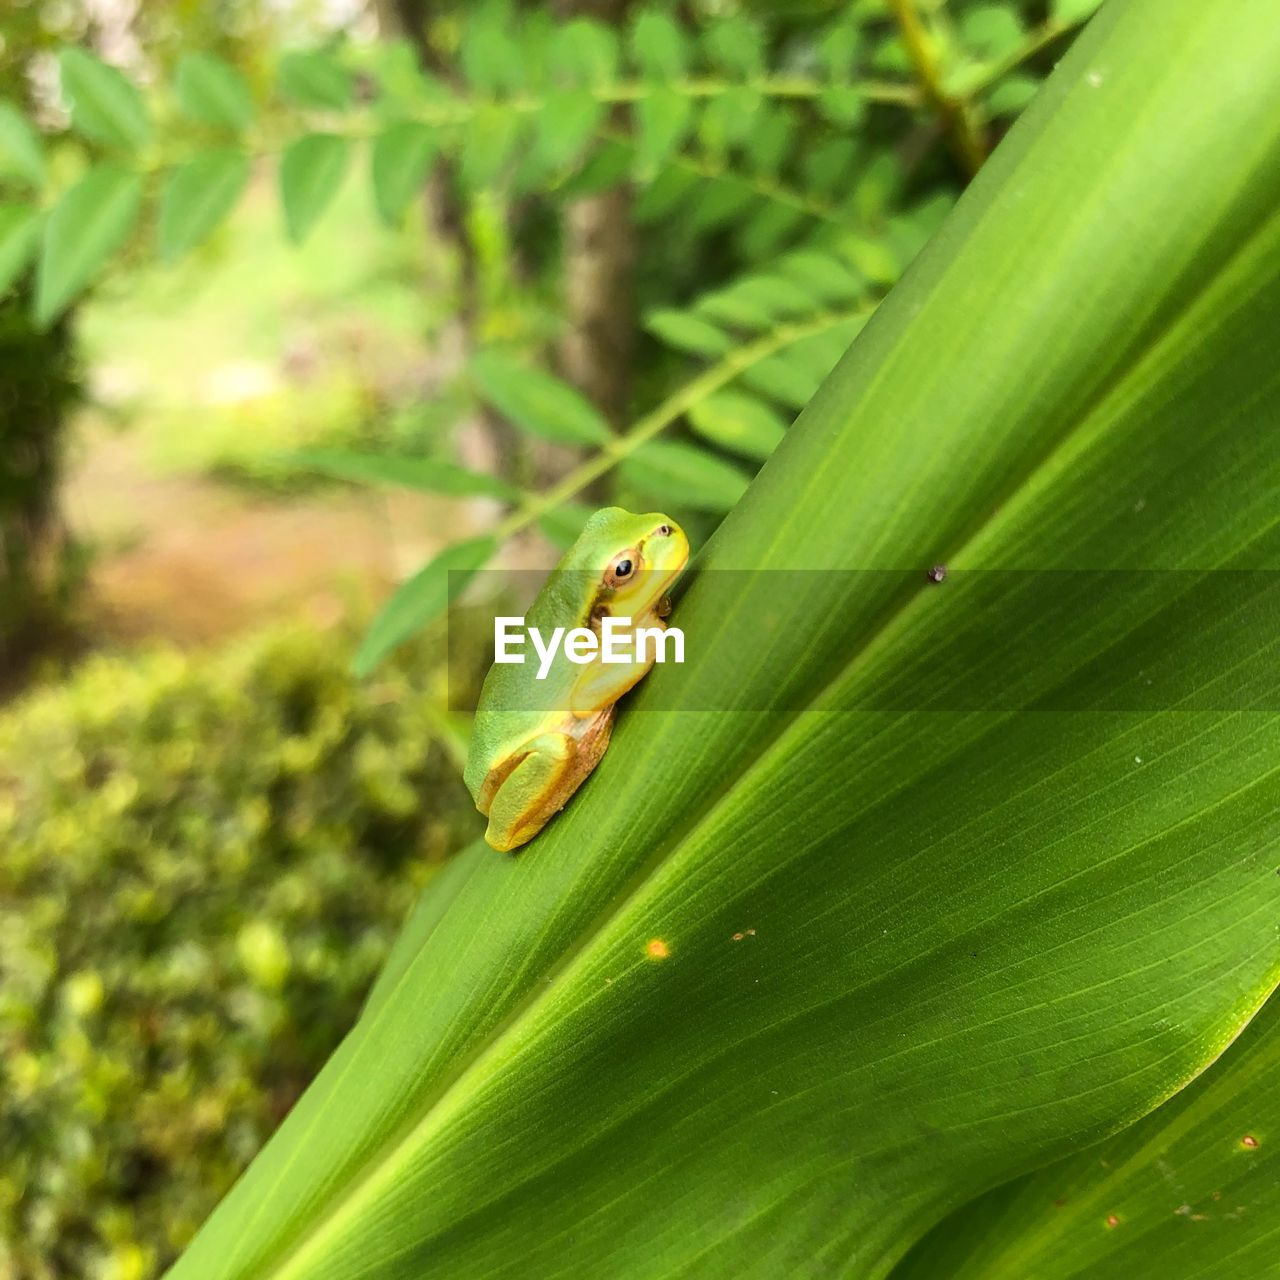 animal themes, green color, animal, animals in the wild, one animal, animal wildlife, plant part, leaf, plant, vertebrate, nature, close-up, no people, reptile, amphibian, day, growth, lizard, frog, selective focus, outdoors